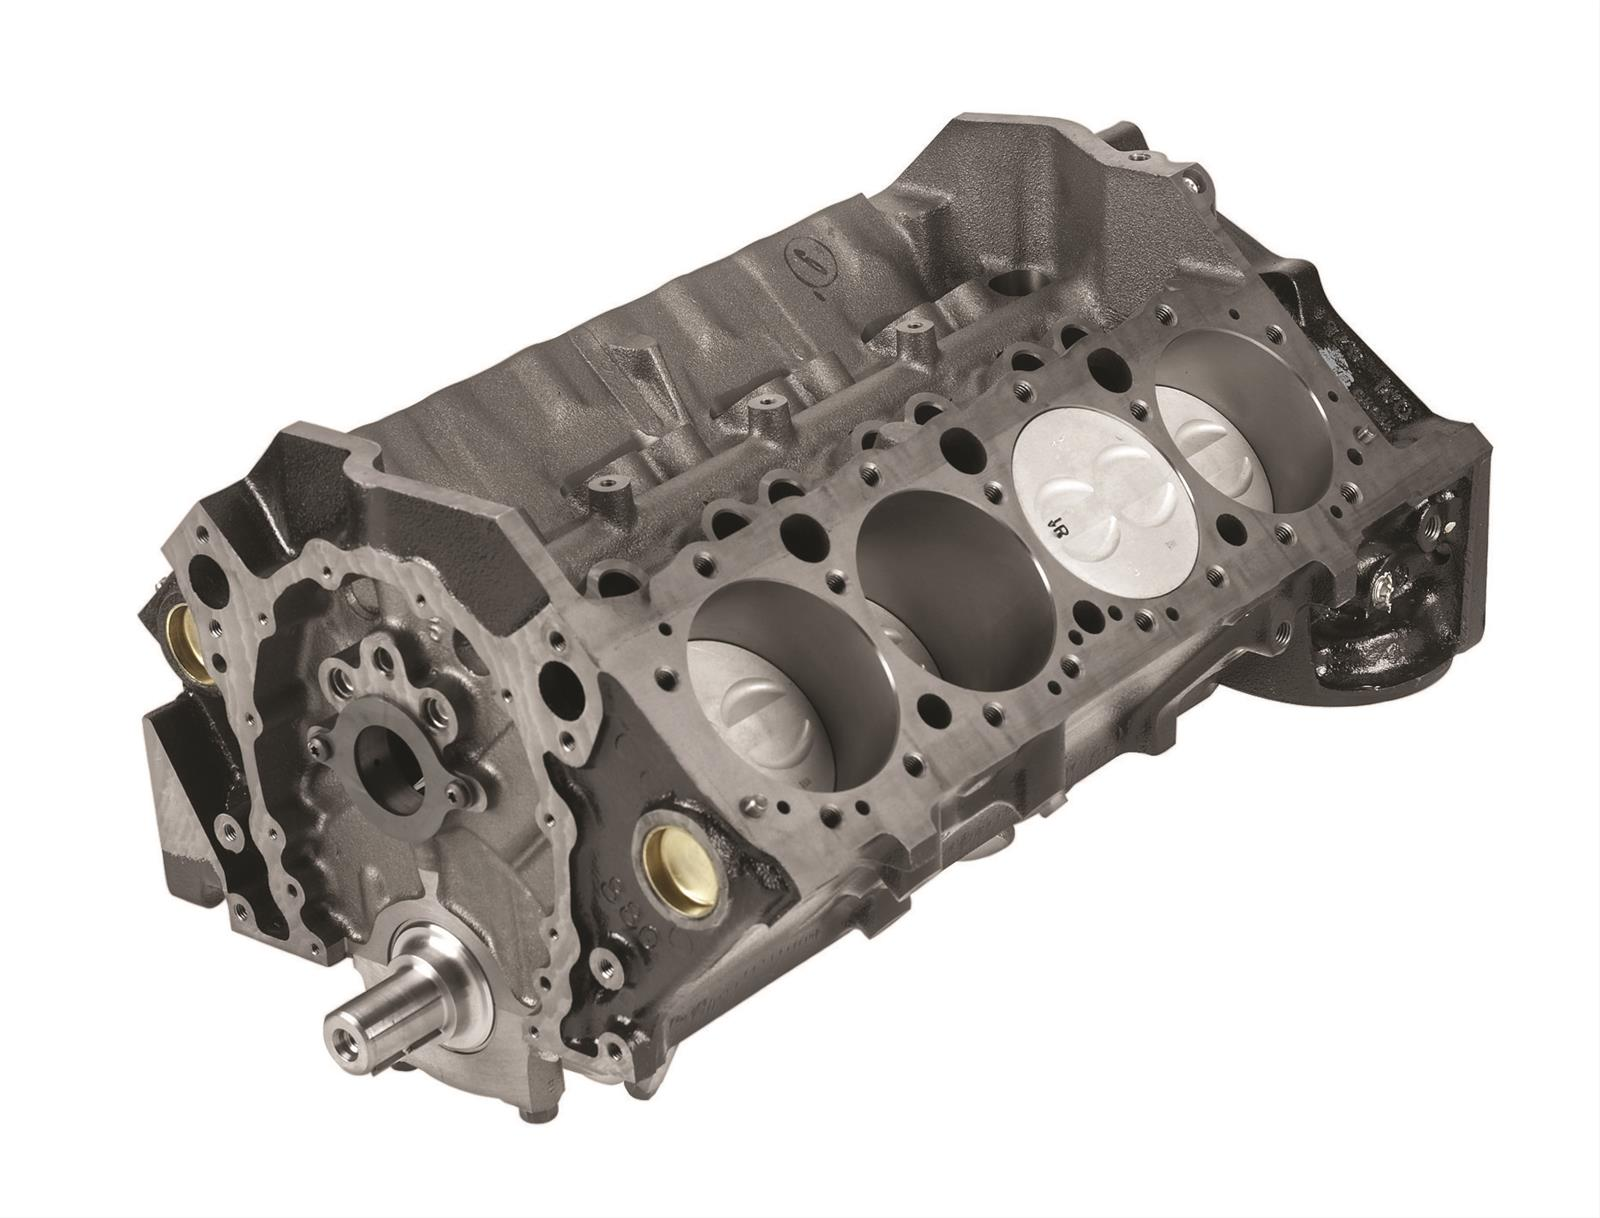 how to clean an old engine block